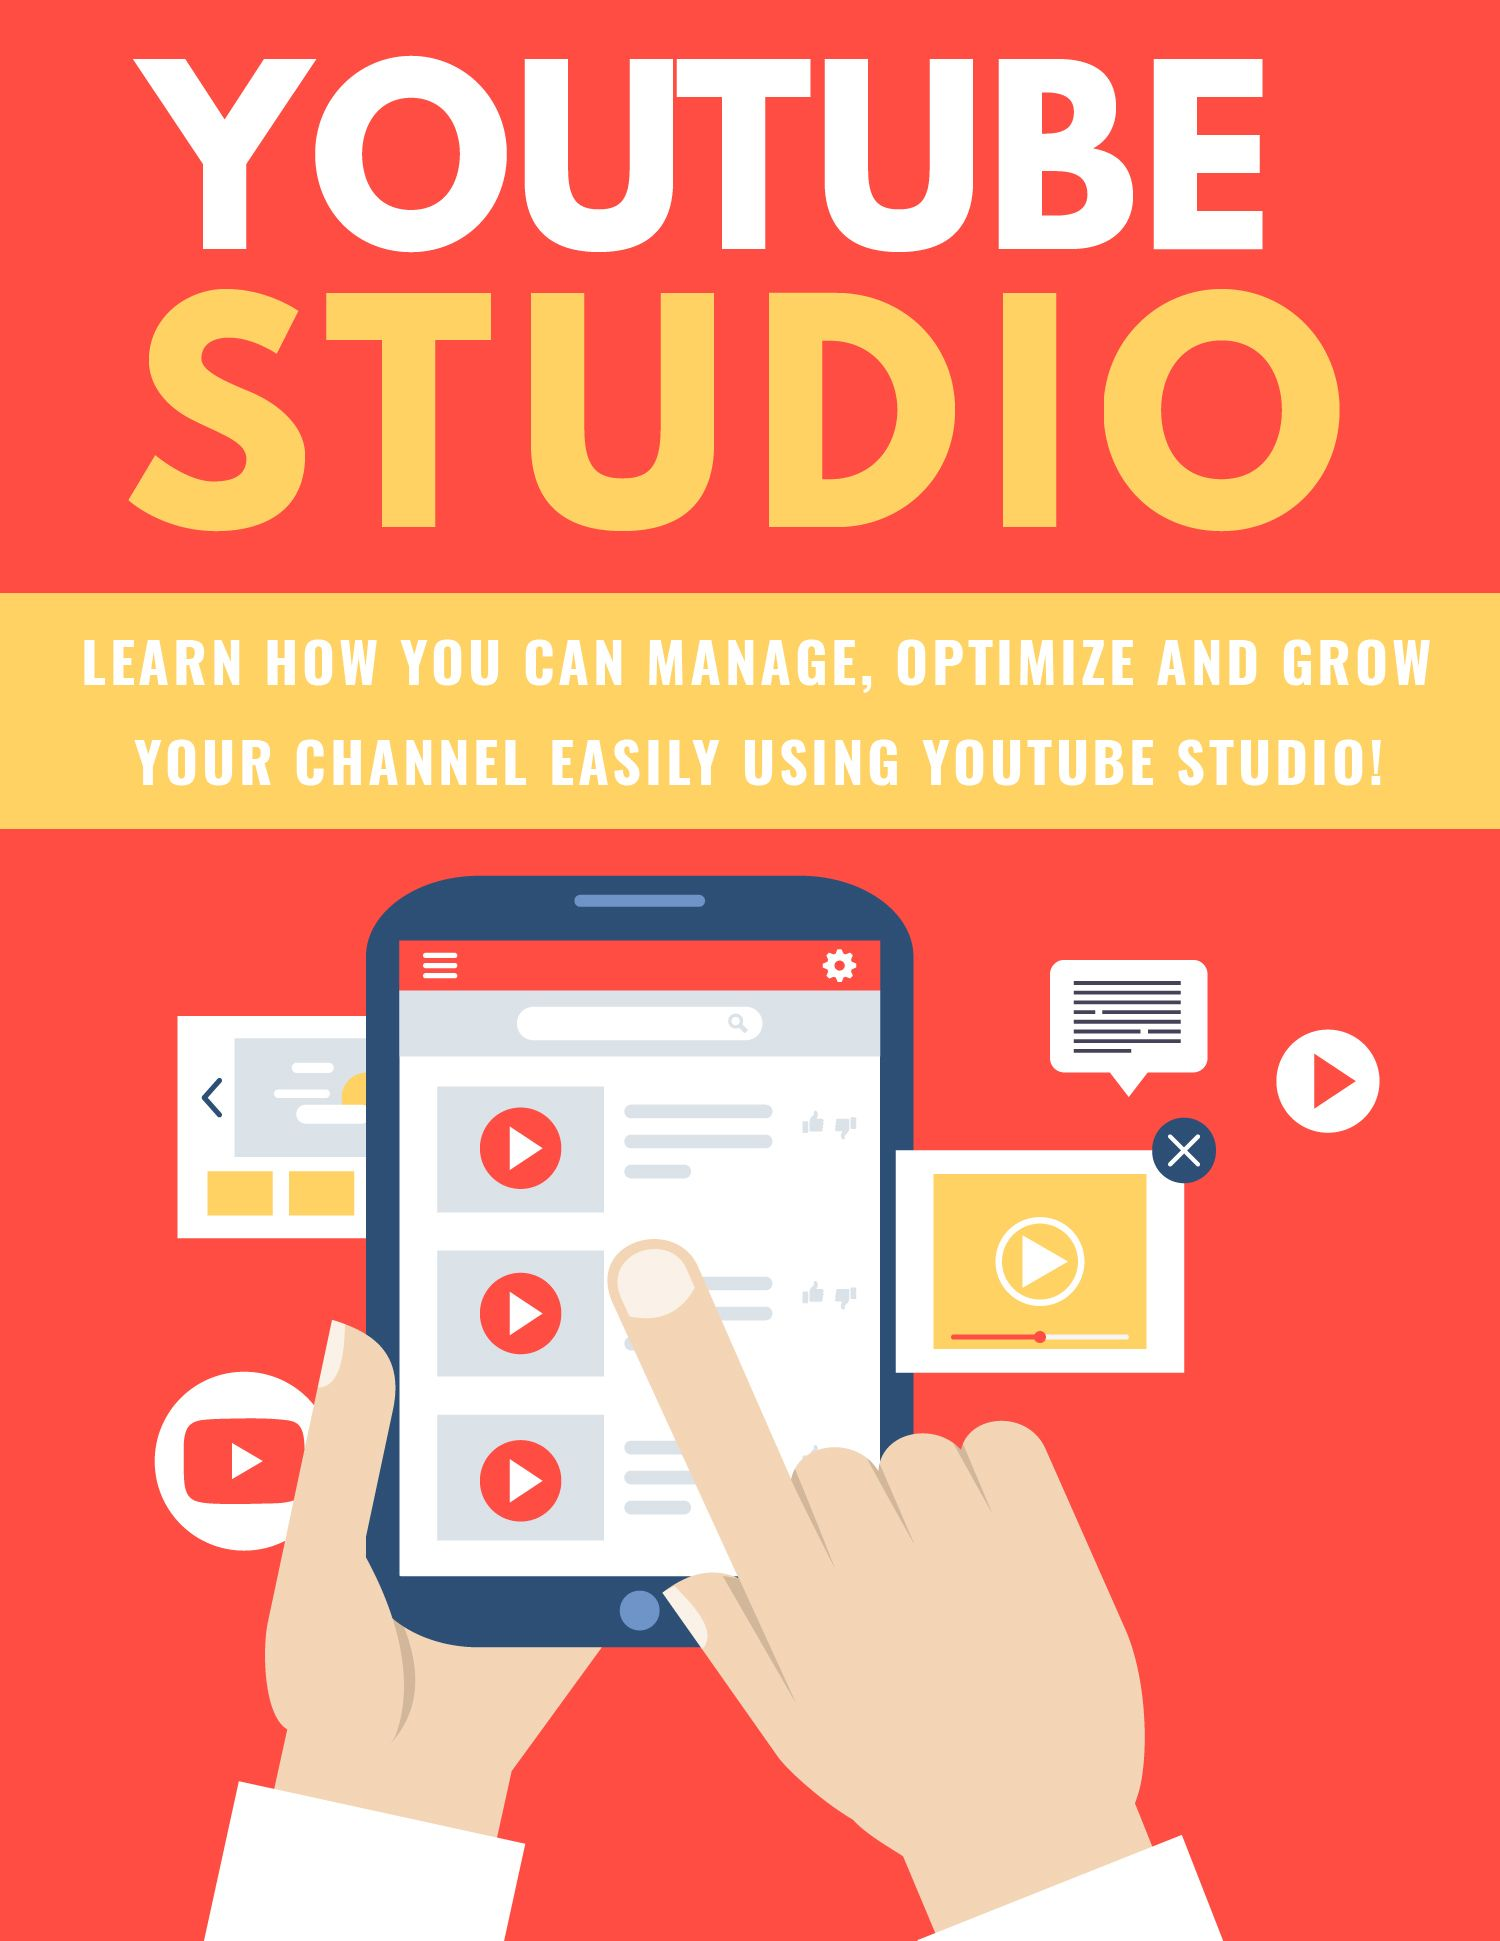 YouTube Studio: Learn How You Can Manage, Optimize And Grow Your Channel Easily Using Youtube Studio! eBook's Book Image